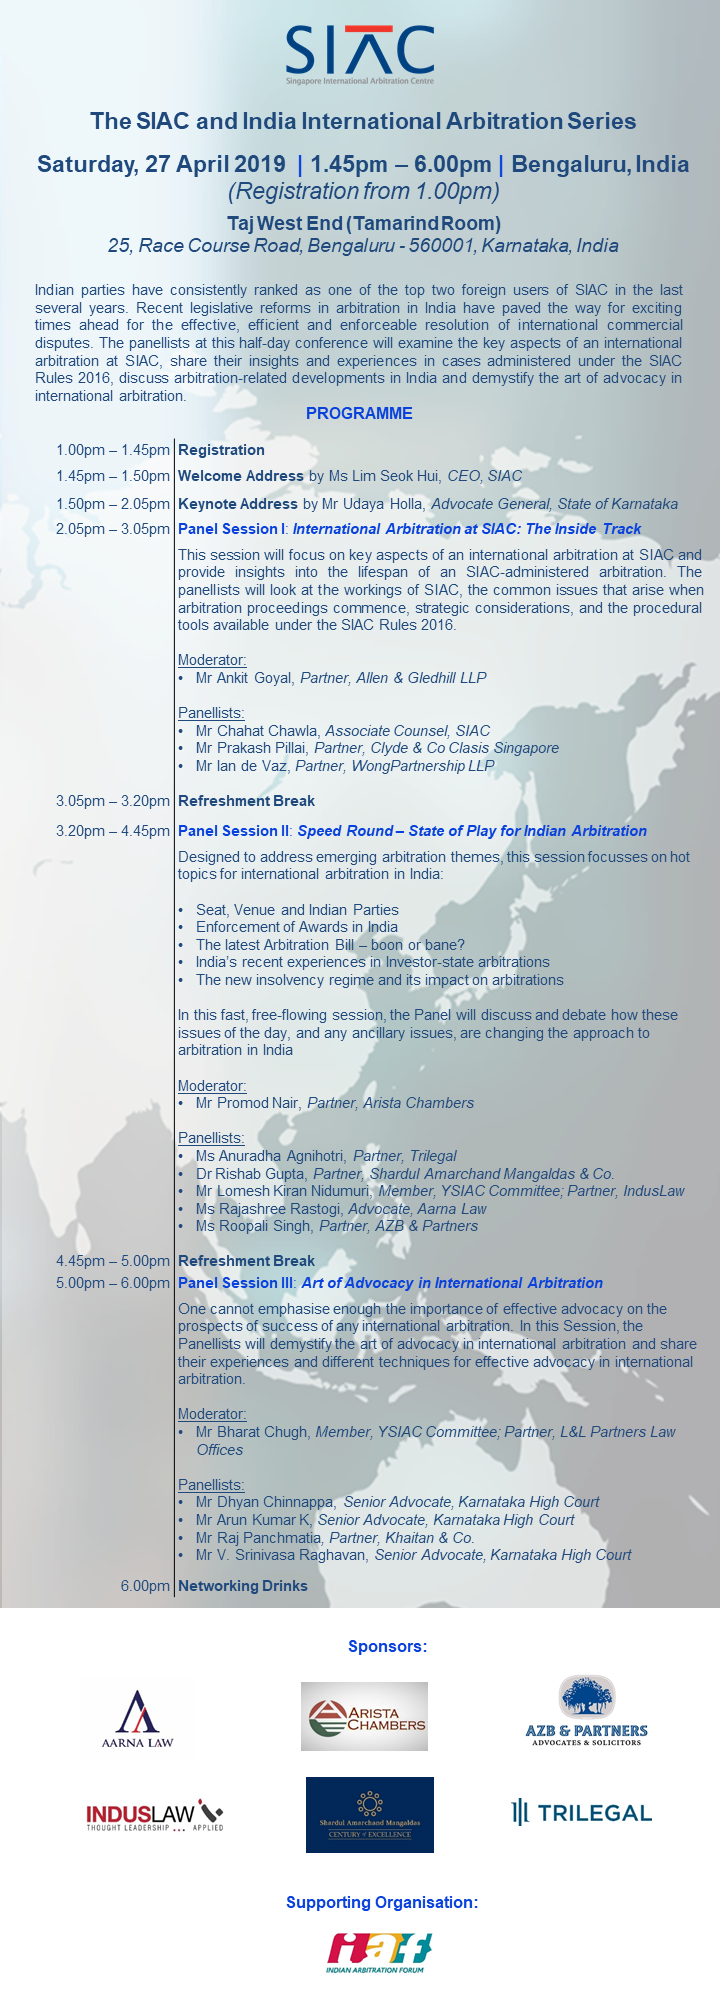 images/SIAC Bengaluru Conference 2019 Flyer_21.png